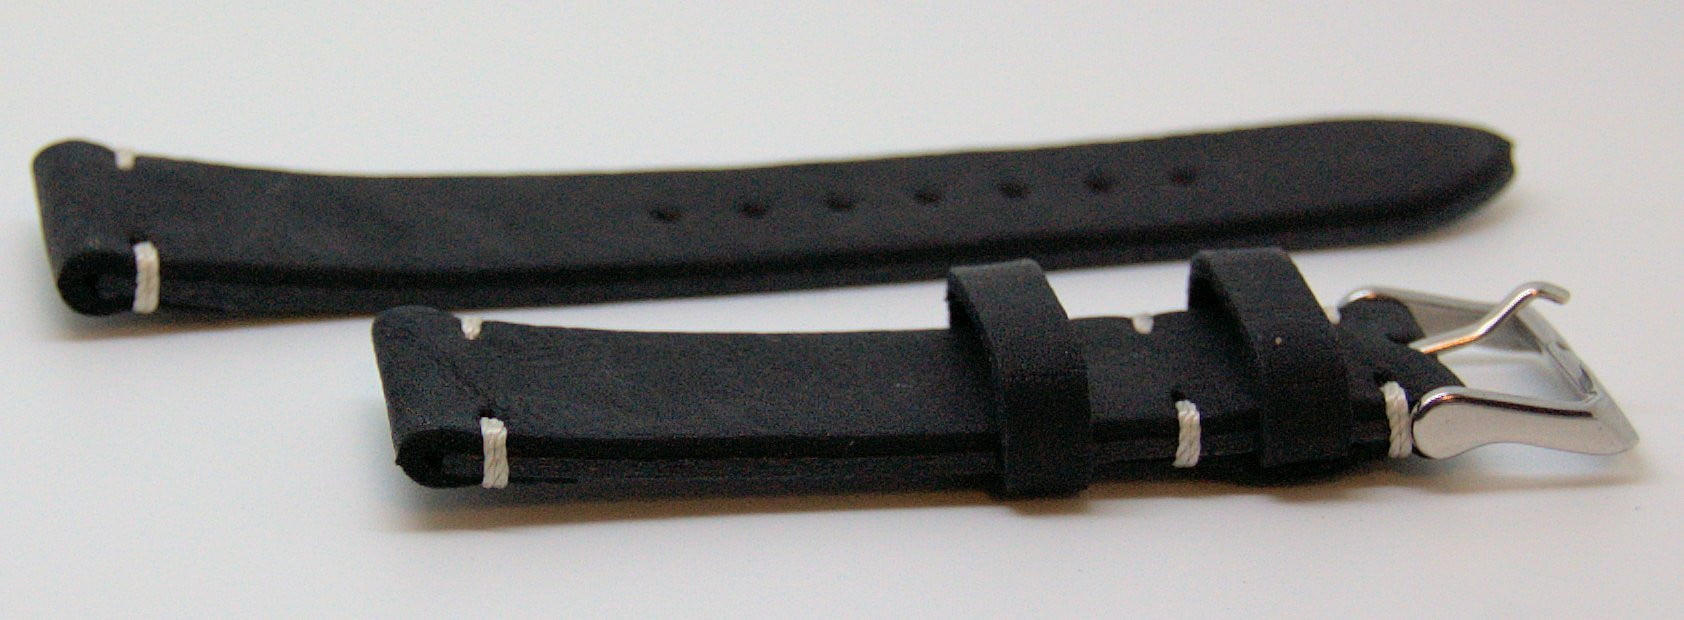 Italian Made 22mm Tapered Nubuck Leather Watch Strap Black - minutemanwatches